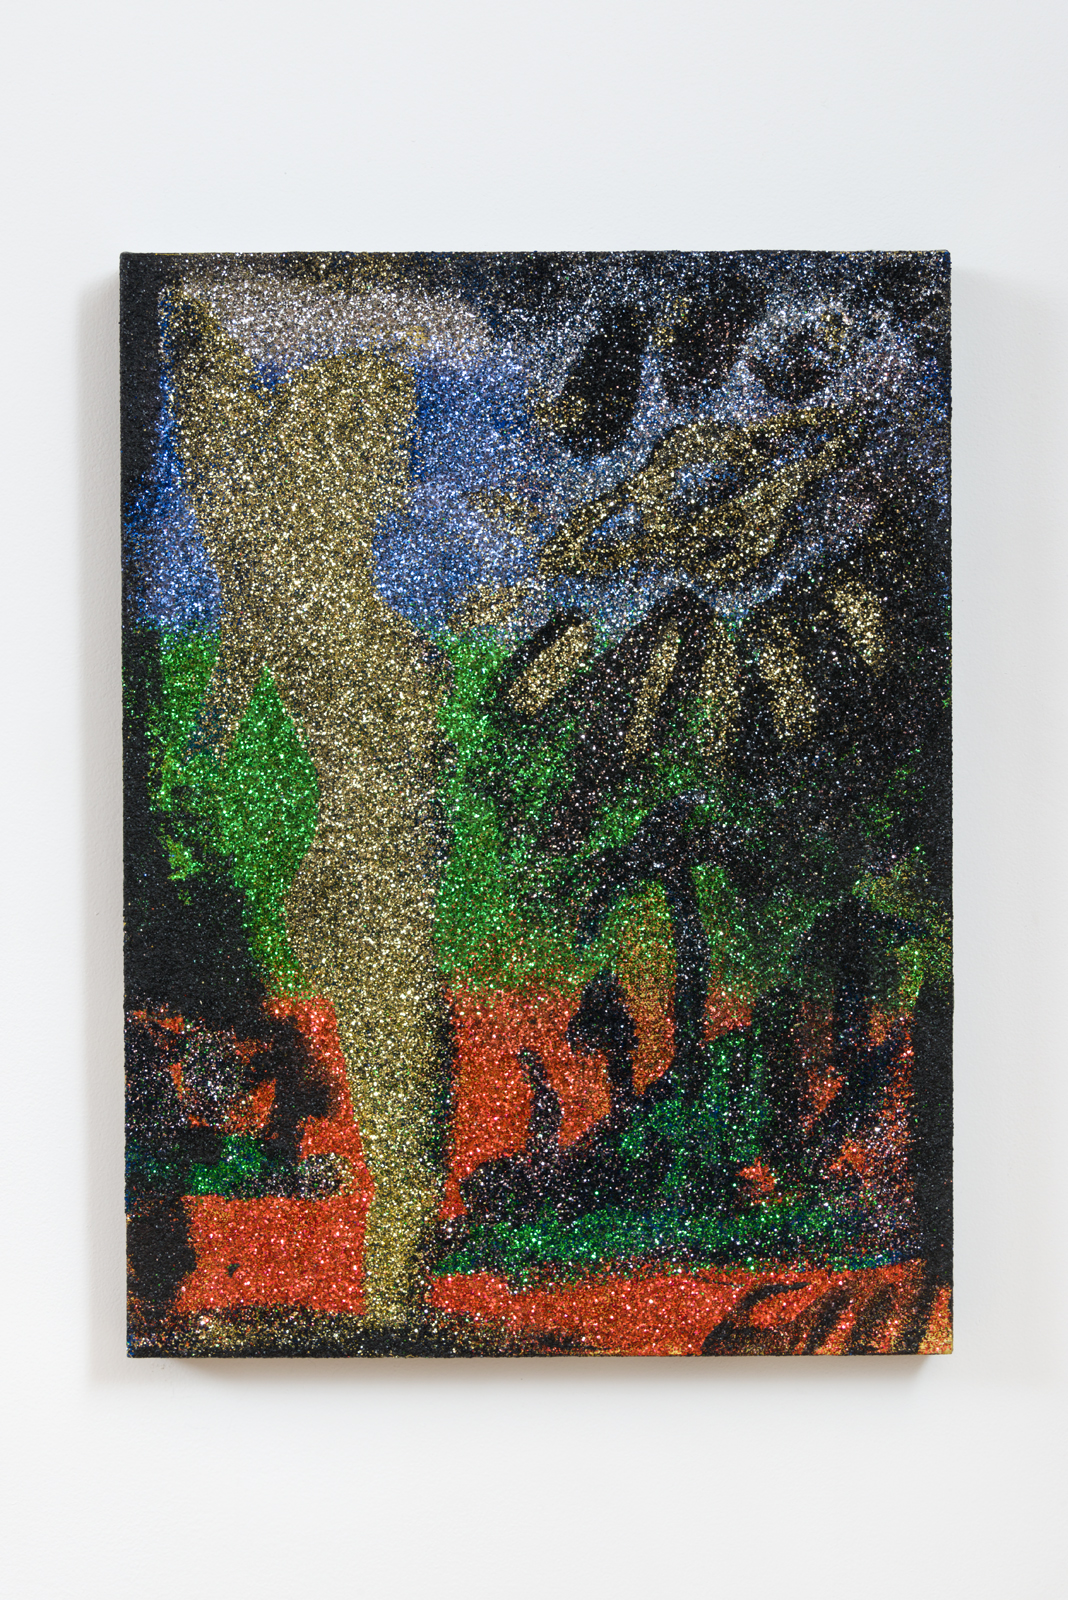 Chris Martin  Islands #2 , 2015 acrylic and glitter on canvas 24 x 18 x 2 in. Courtesy of David Kordansky Gallery, Los Angeles, CA